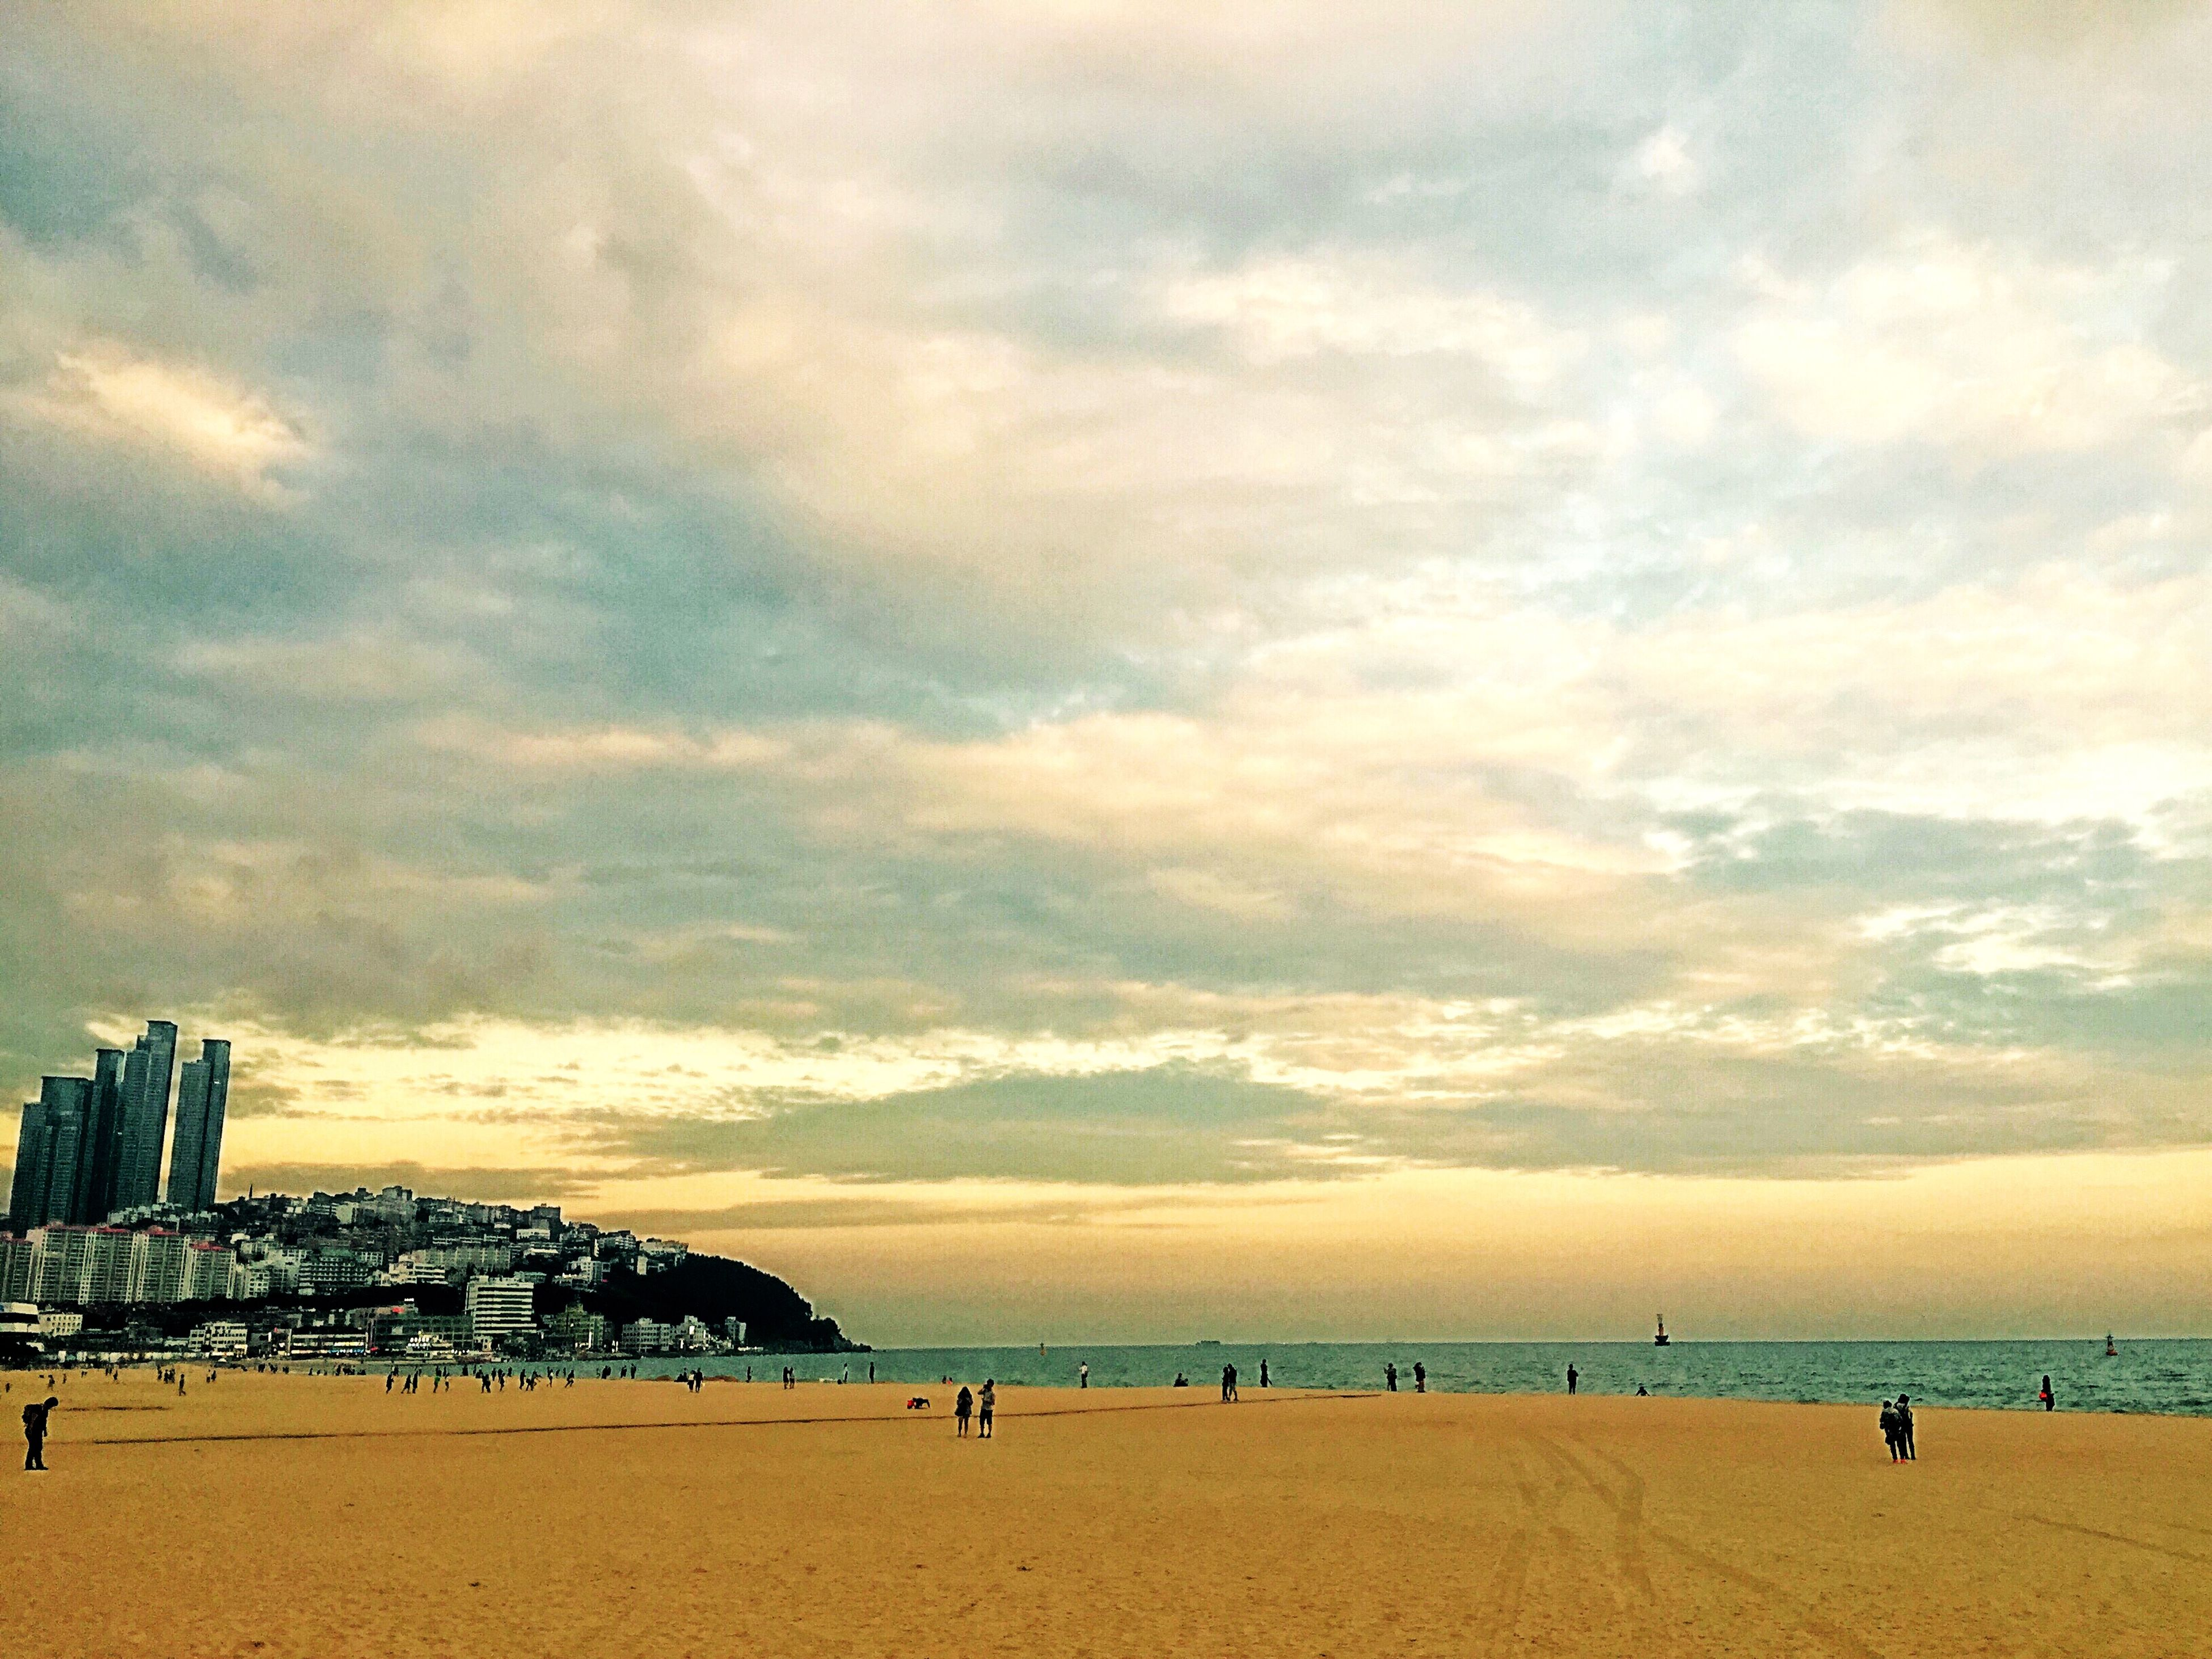 beach, sea, sky, shore, built structure, water, cloud - sky, architecture, sand, building exterior, horizon over water, large group of people, vacations, lifestyles, scenics, leisure activity, cloud, cloudy, nature